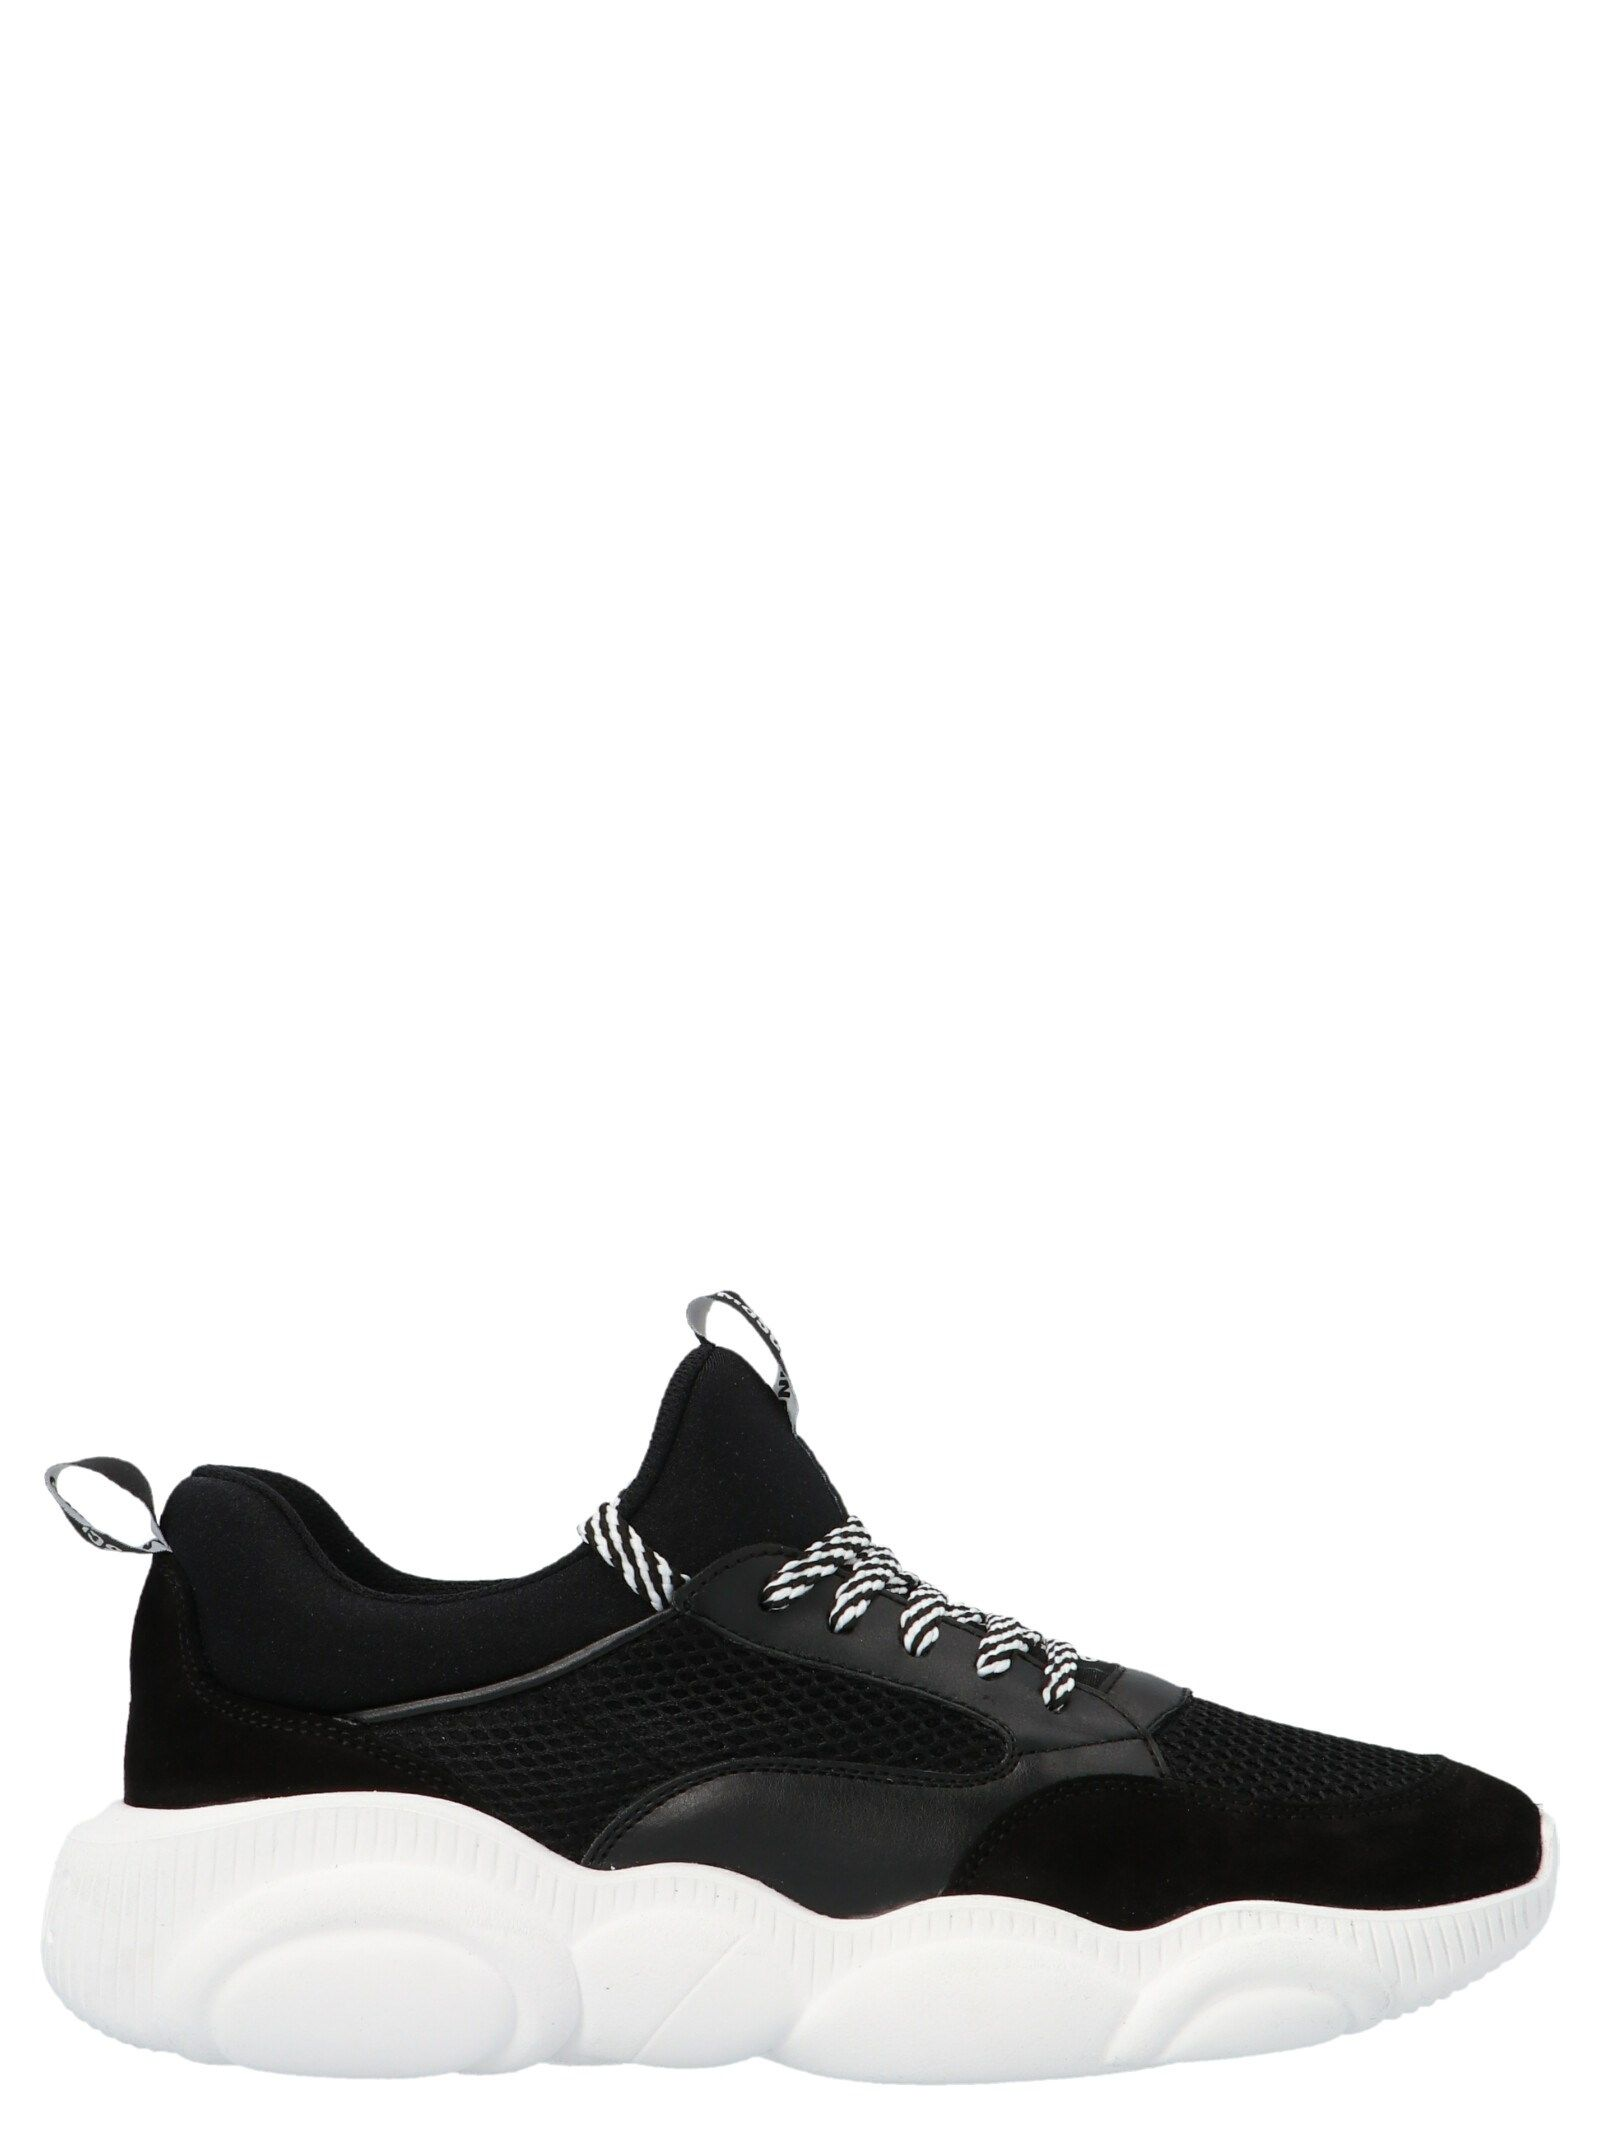 Moschino MOSCHINO WOMEN'S MA15103G1CMQ100A BLACK OTHER MATERIALS SNEAKERS